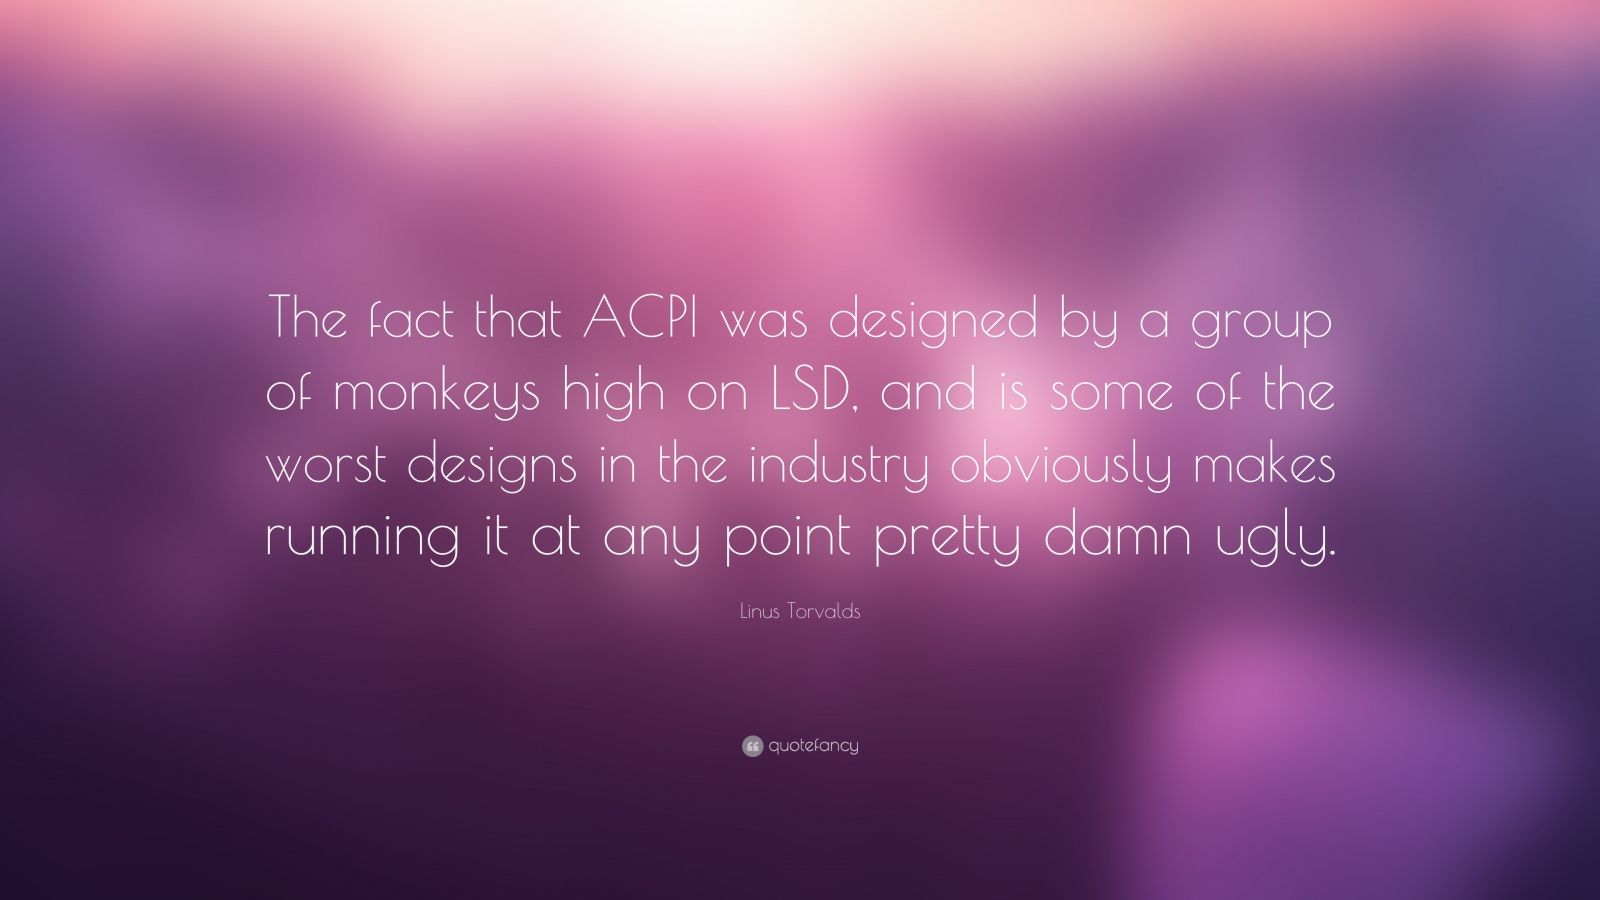 """Linus Torvalds Quote: """"The fact that ACPI was designed by a group of monkeys high on LSD, and is some of the worst designs in the industry obviously makes running it at any point pretty damn ugly."""""""